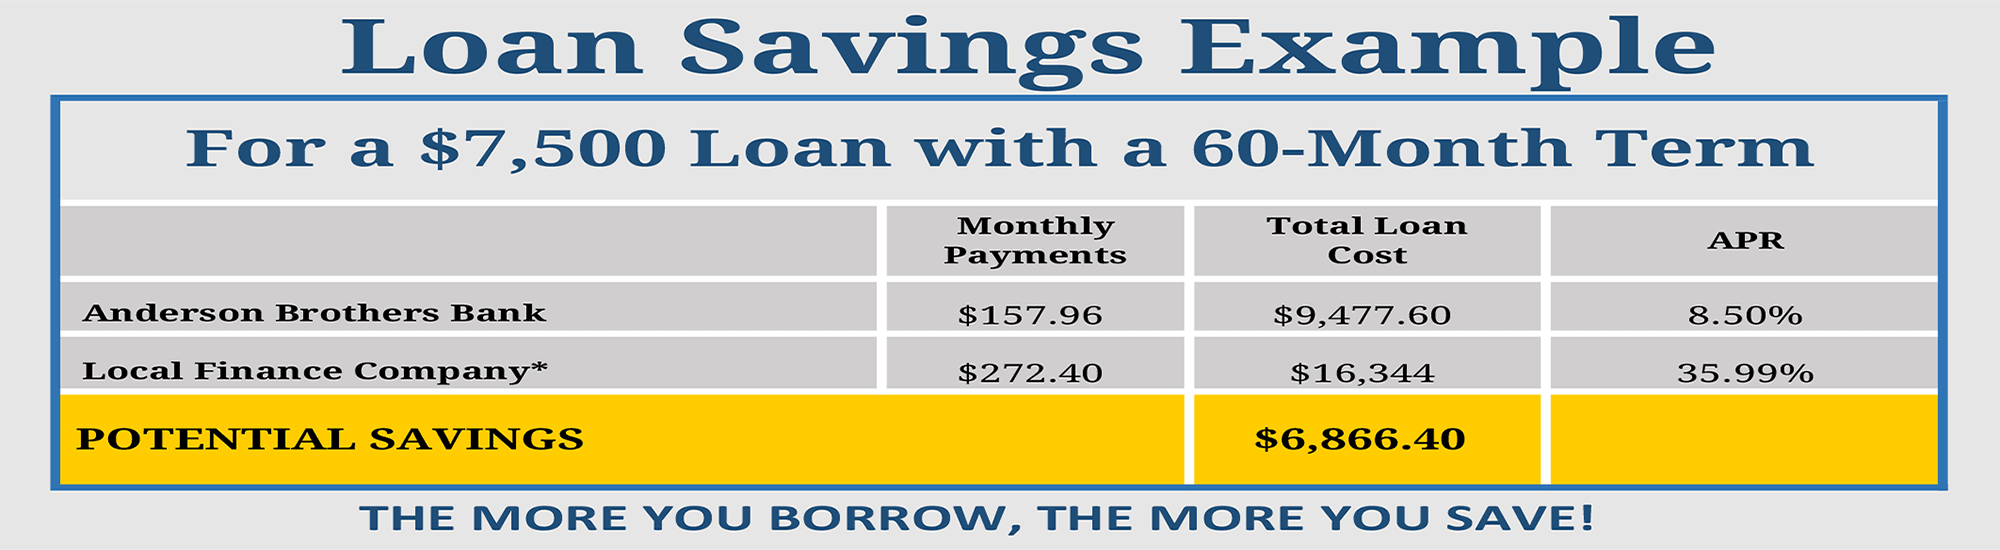 Loan savings example chart for seventy five hundred dollar loan amount with 60 month term. Anderson Brothers Bank loan would have 60 monthly payments of one hundred fifty seven dollars and ninety six cents, with APR of eight point five percent, total loan cost nine thousand, four hundred seventy-seven and sixty cents. And a local finance company loan would have 60 monthly payments of two hundred seventy two dollars and forty cents, with APR of thirty-five point nine nine percent, total loan cost sixteen thousand, three hundred forty-four dollars.